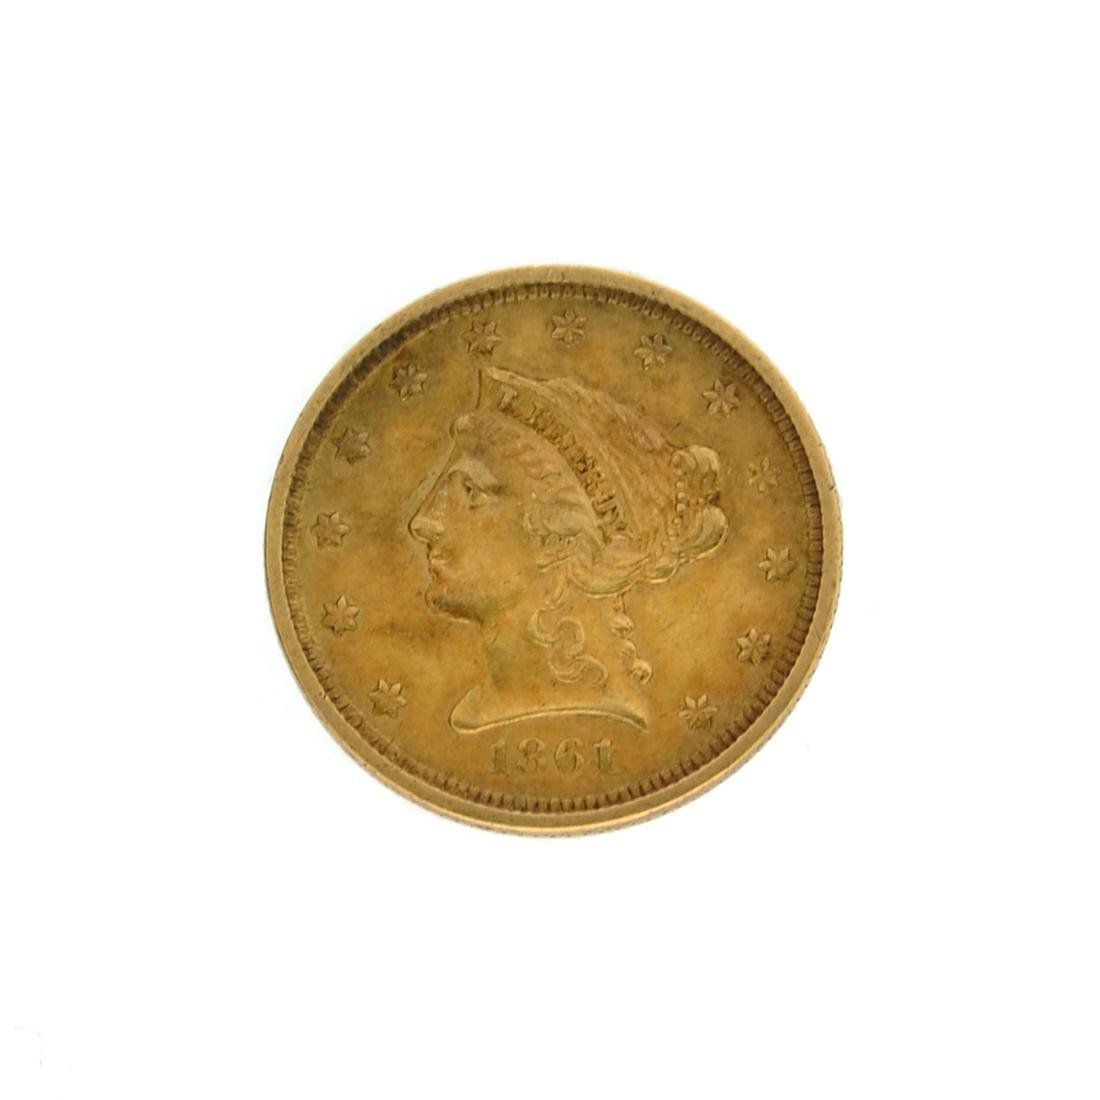 Extremely Rare 1861 $2.50 U.S. Liberty Head Gold Coin